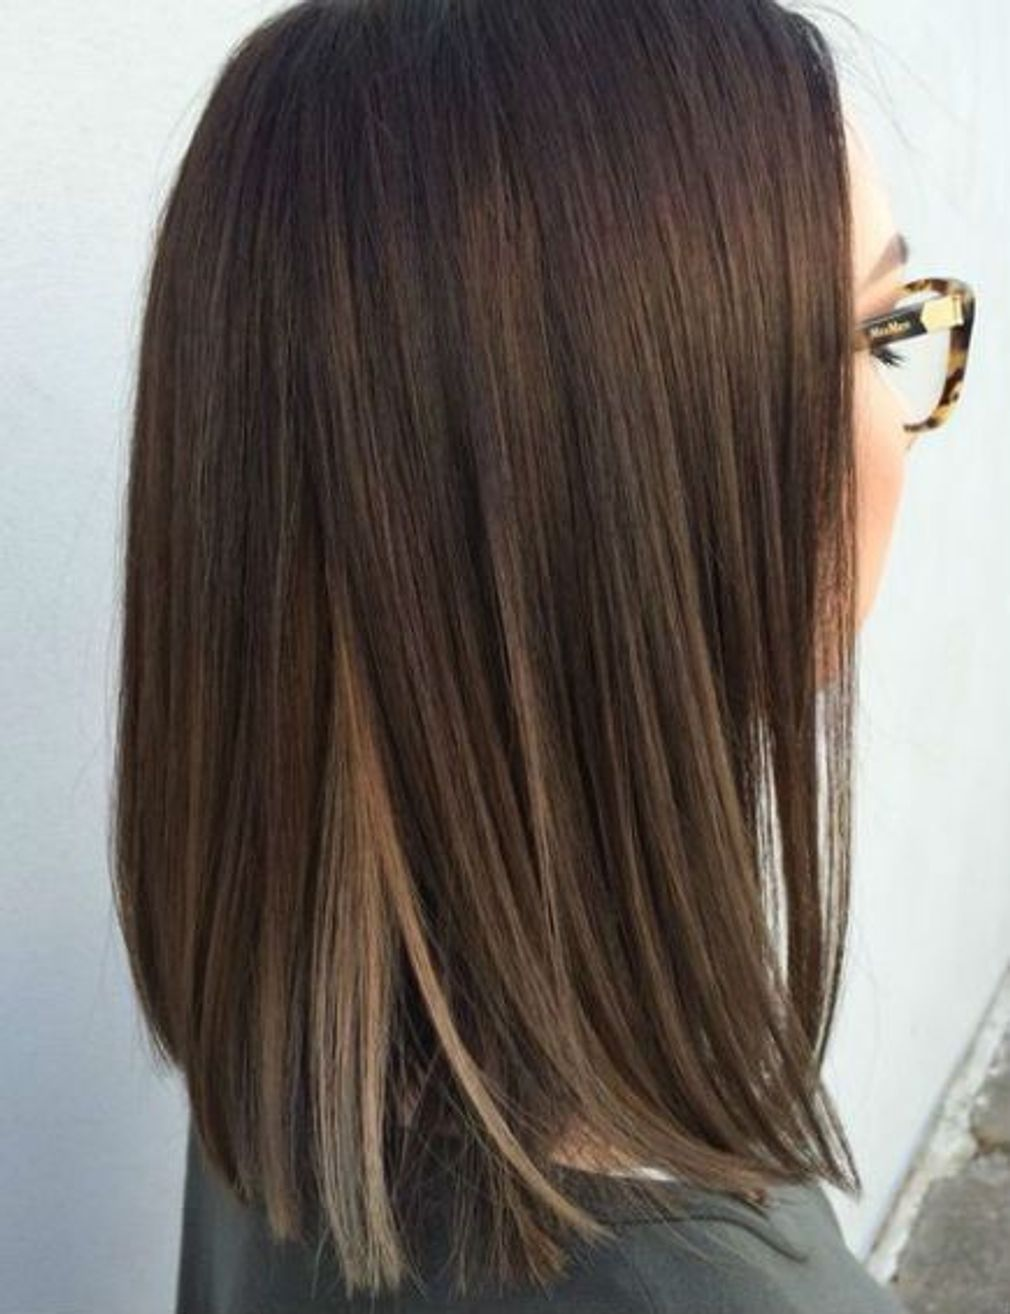 Carre Long Lisse Coiffure Carre Long Cheveux Bruns Mi Longs Coupe Cheveux Mi Long Brune